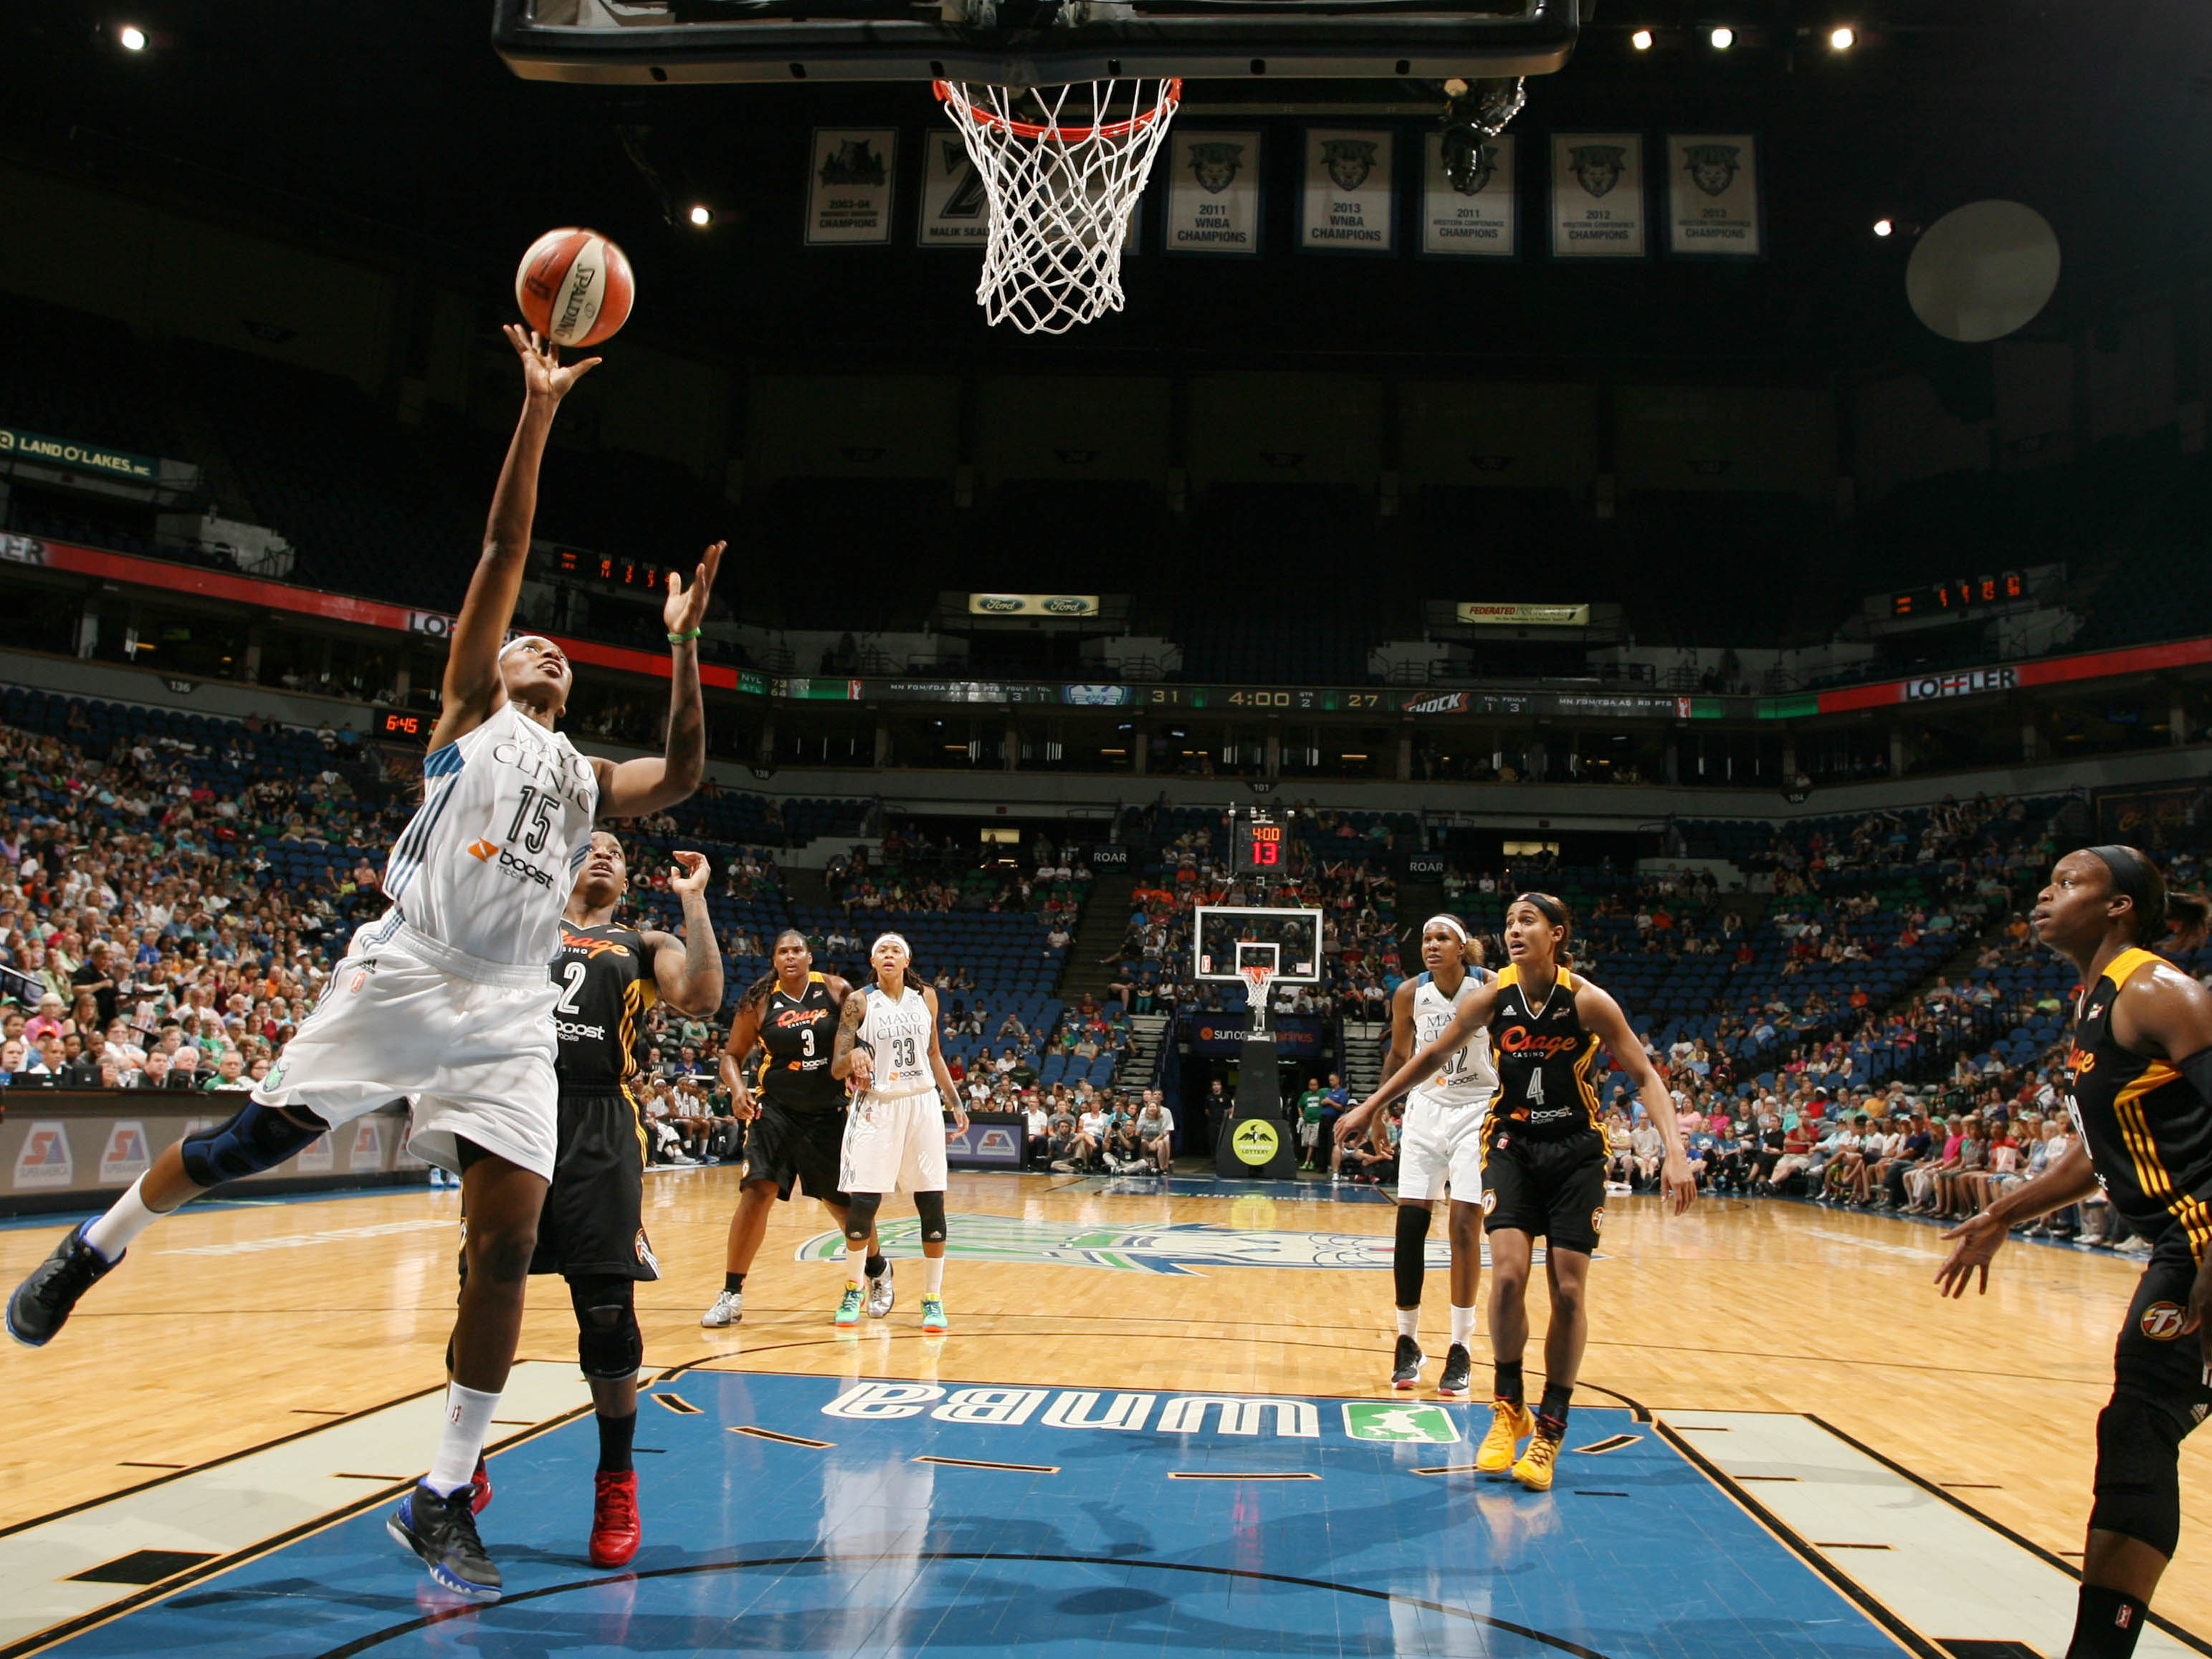 Lynx center Asjha Jones managed four points, two rebounds and three assists in just unde 17 minutes of playing time.